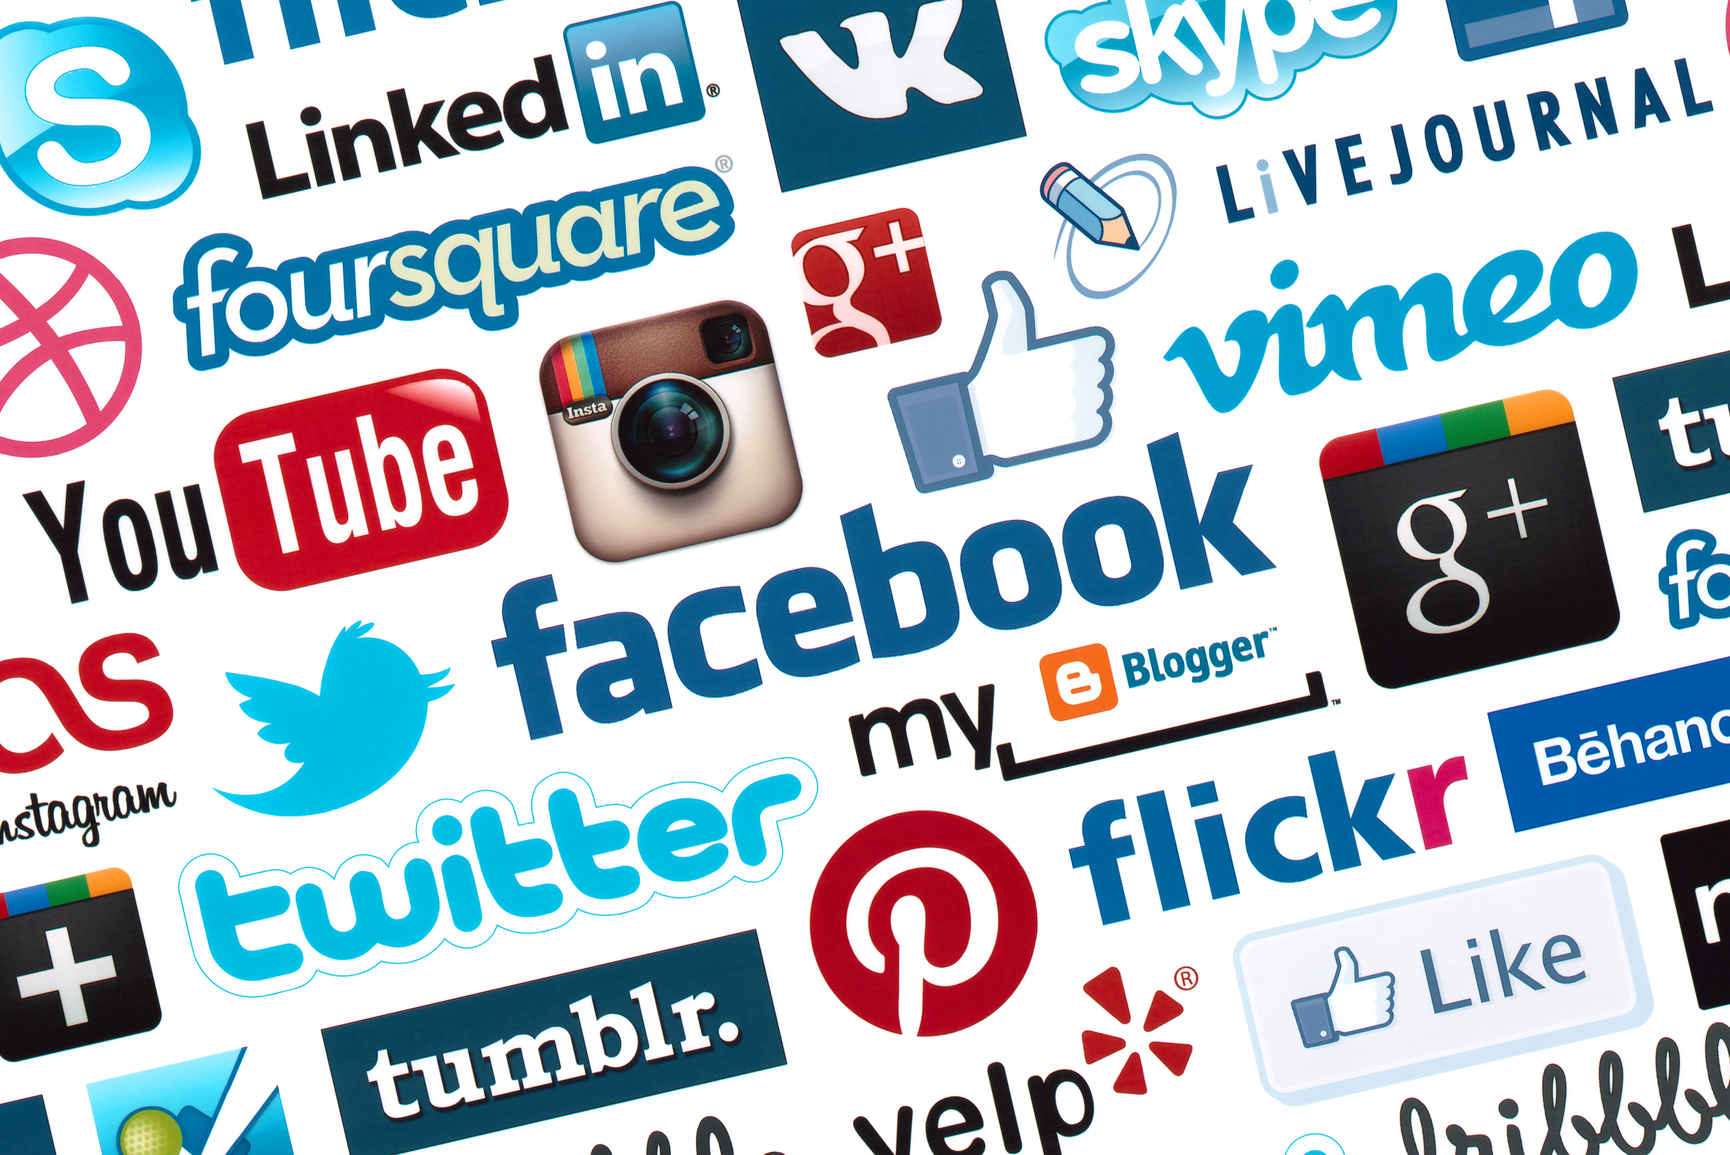 What Social Media Platforms Should You Publish Your Video To?